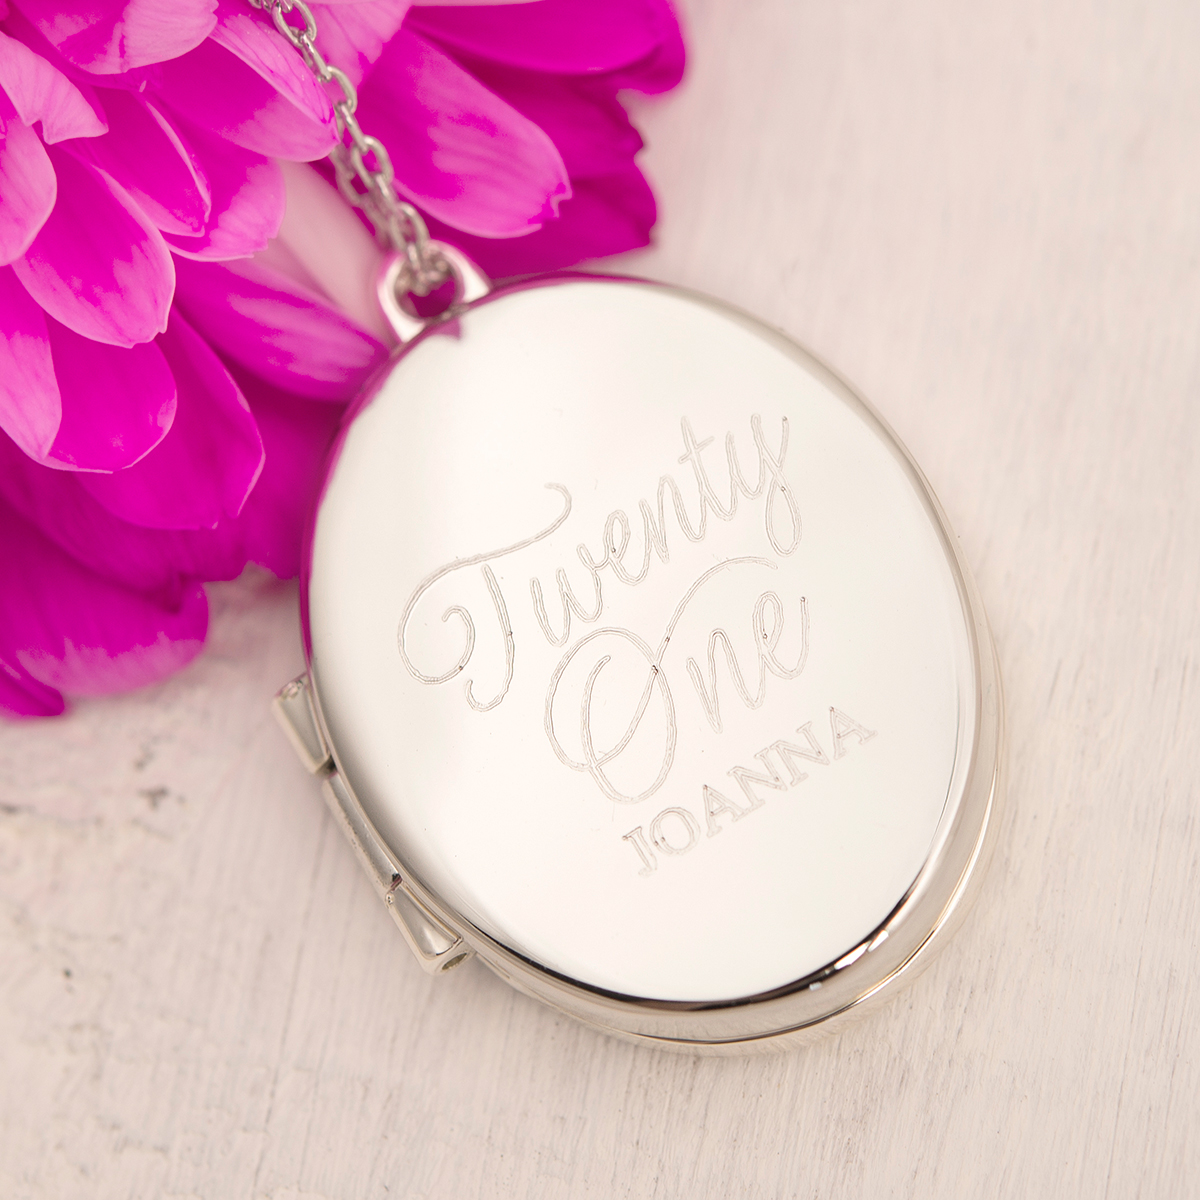 Engraved Oval-Shaped Locket Necklace - Twenty One - 21st gift